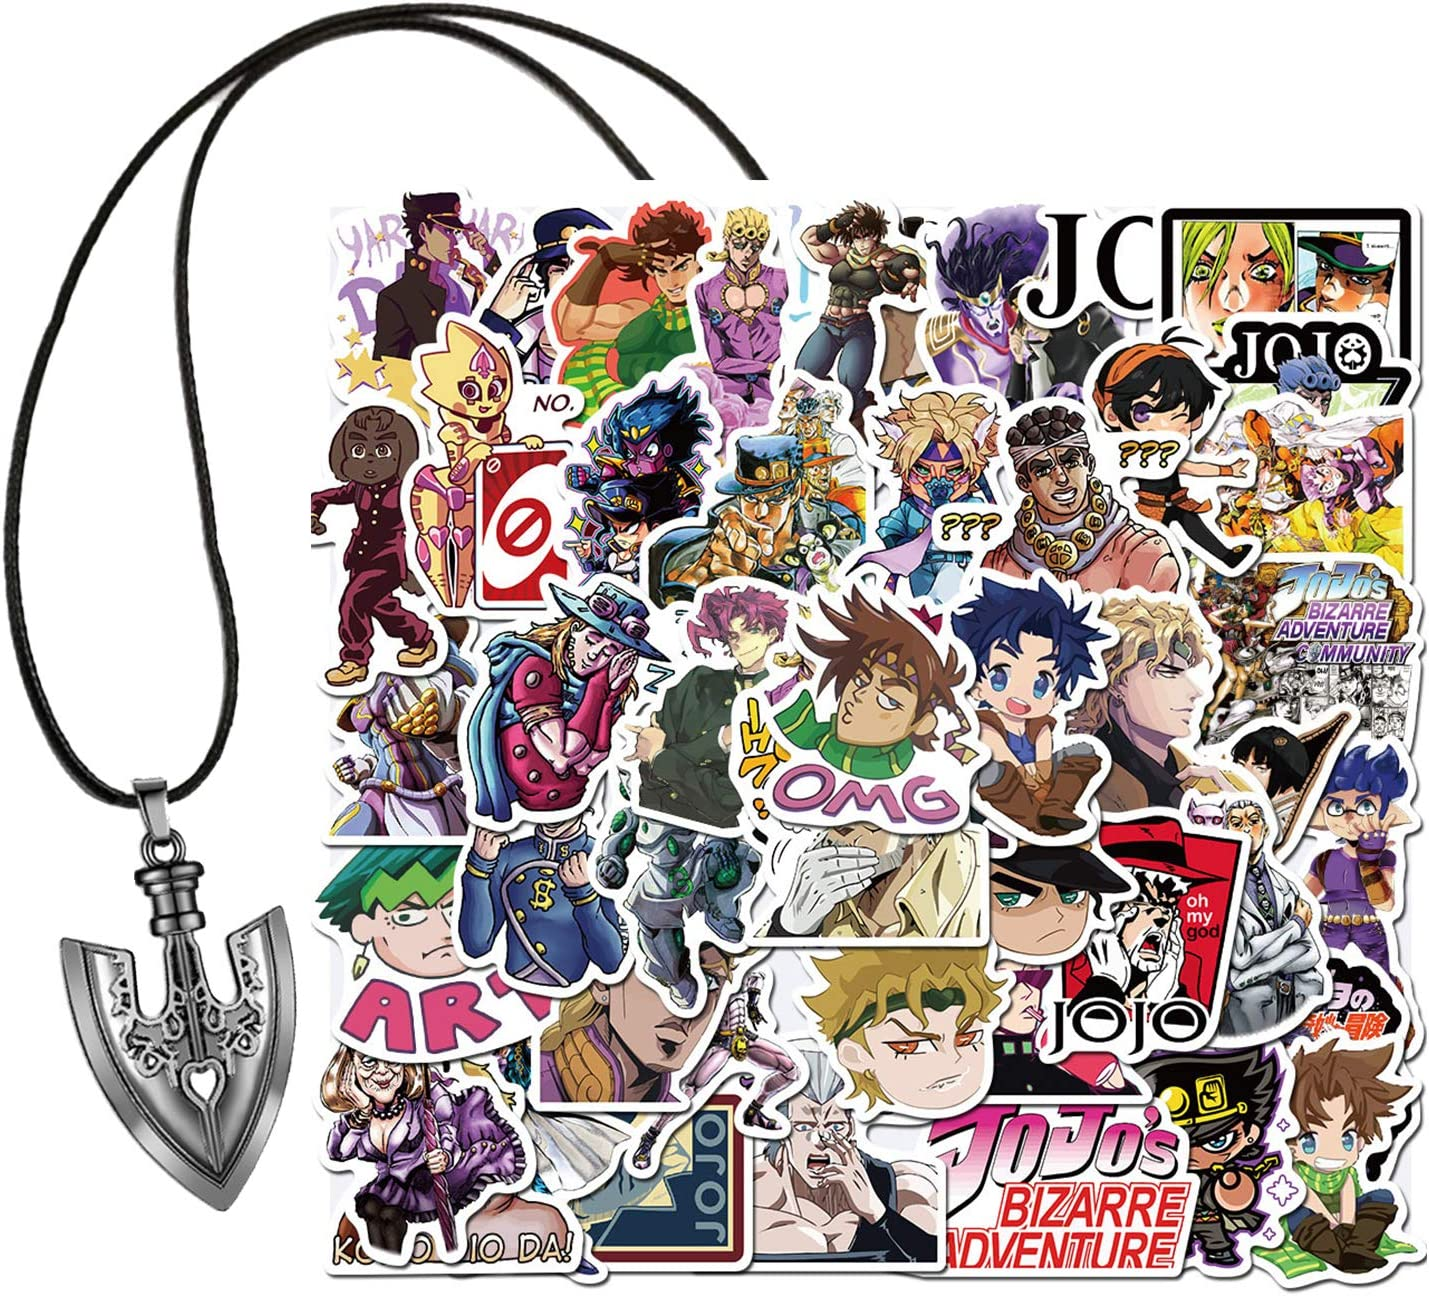 Amazon Com Kilmila Jojo S Bizarre Adventure Stickers 50pcs With Jojo Arrow Requiem Pendant Necklace Anime Cartoon Laptop Stickers Waterproof Skateboard Car Snowboard Bicycle Luggage Kitchen Dining In this video, i will be stand farming with requiem arrows in project jojo. kilmila jojo s bizarre adventure stickers 50pcs with jojo arrow requiem pendant necklace anime cartoon laptop stickers waterproof skateboard car